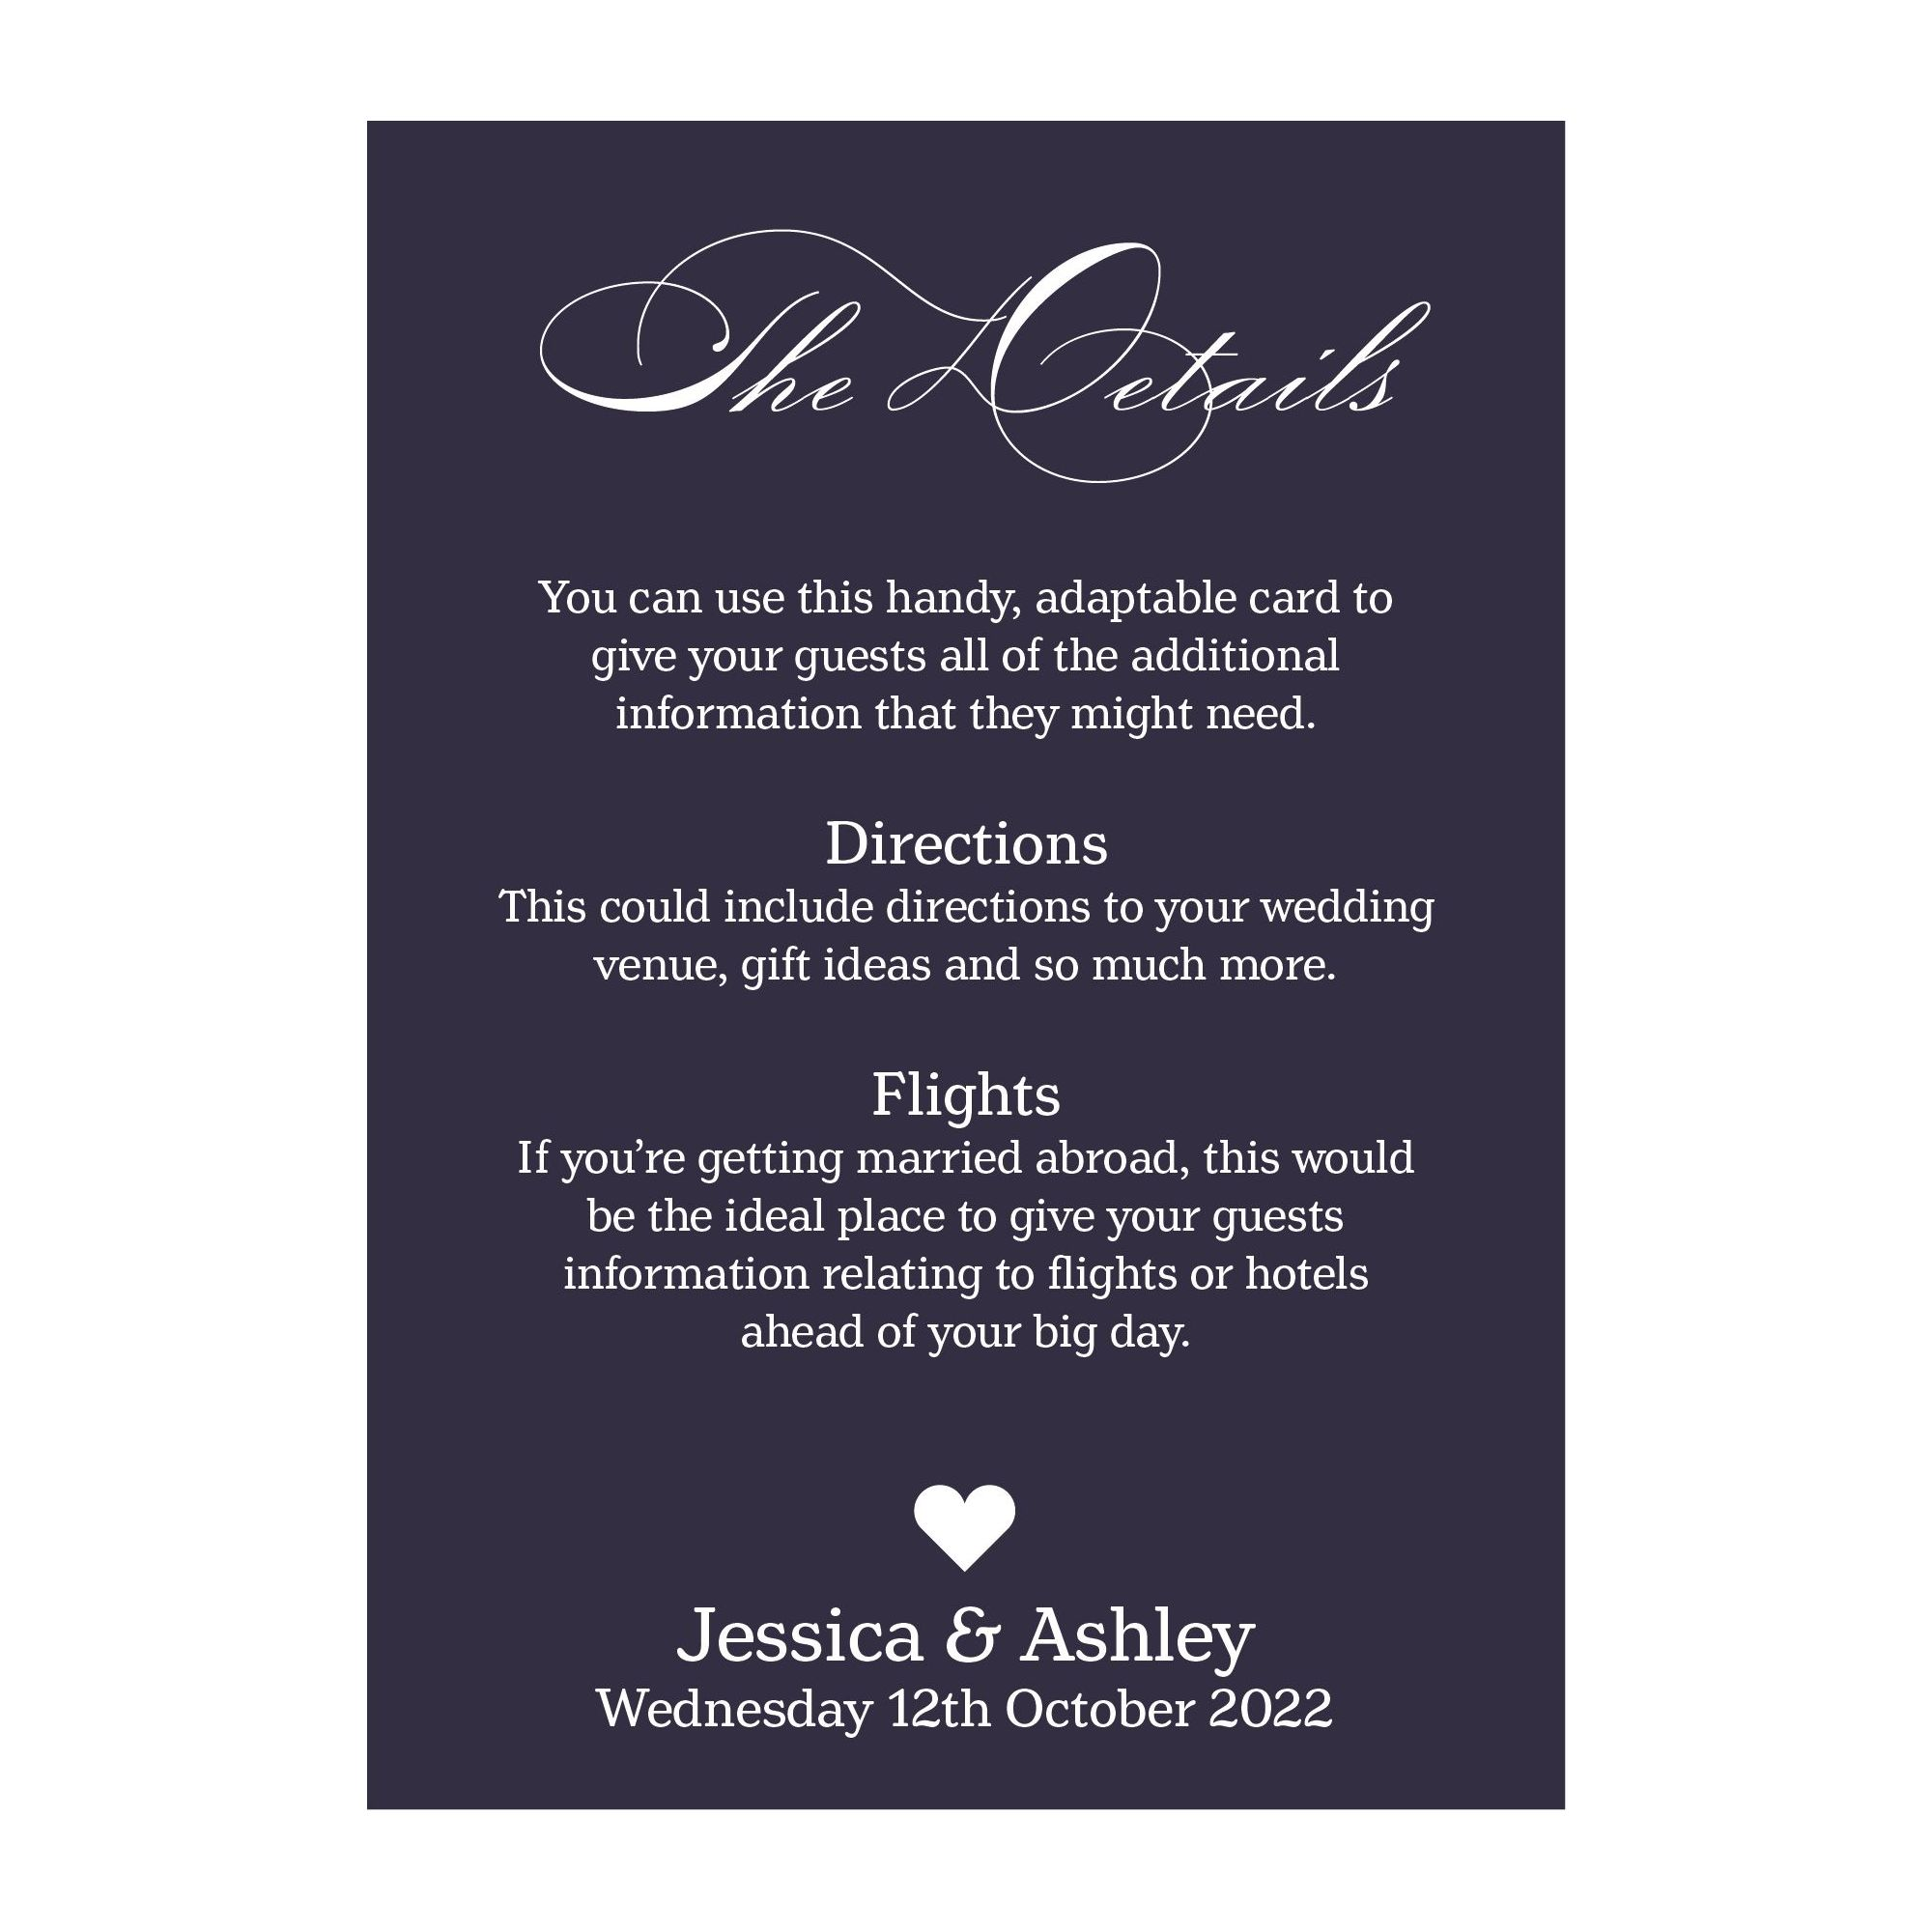 Navy Blue with White Ink Classic Swirl Decorative Guest Information Cards